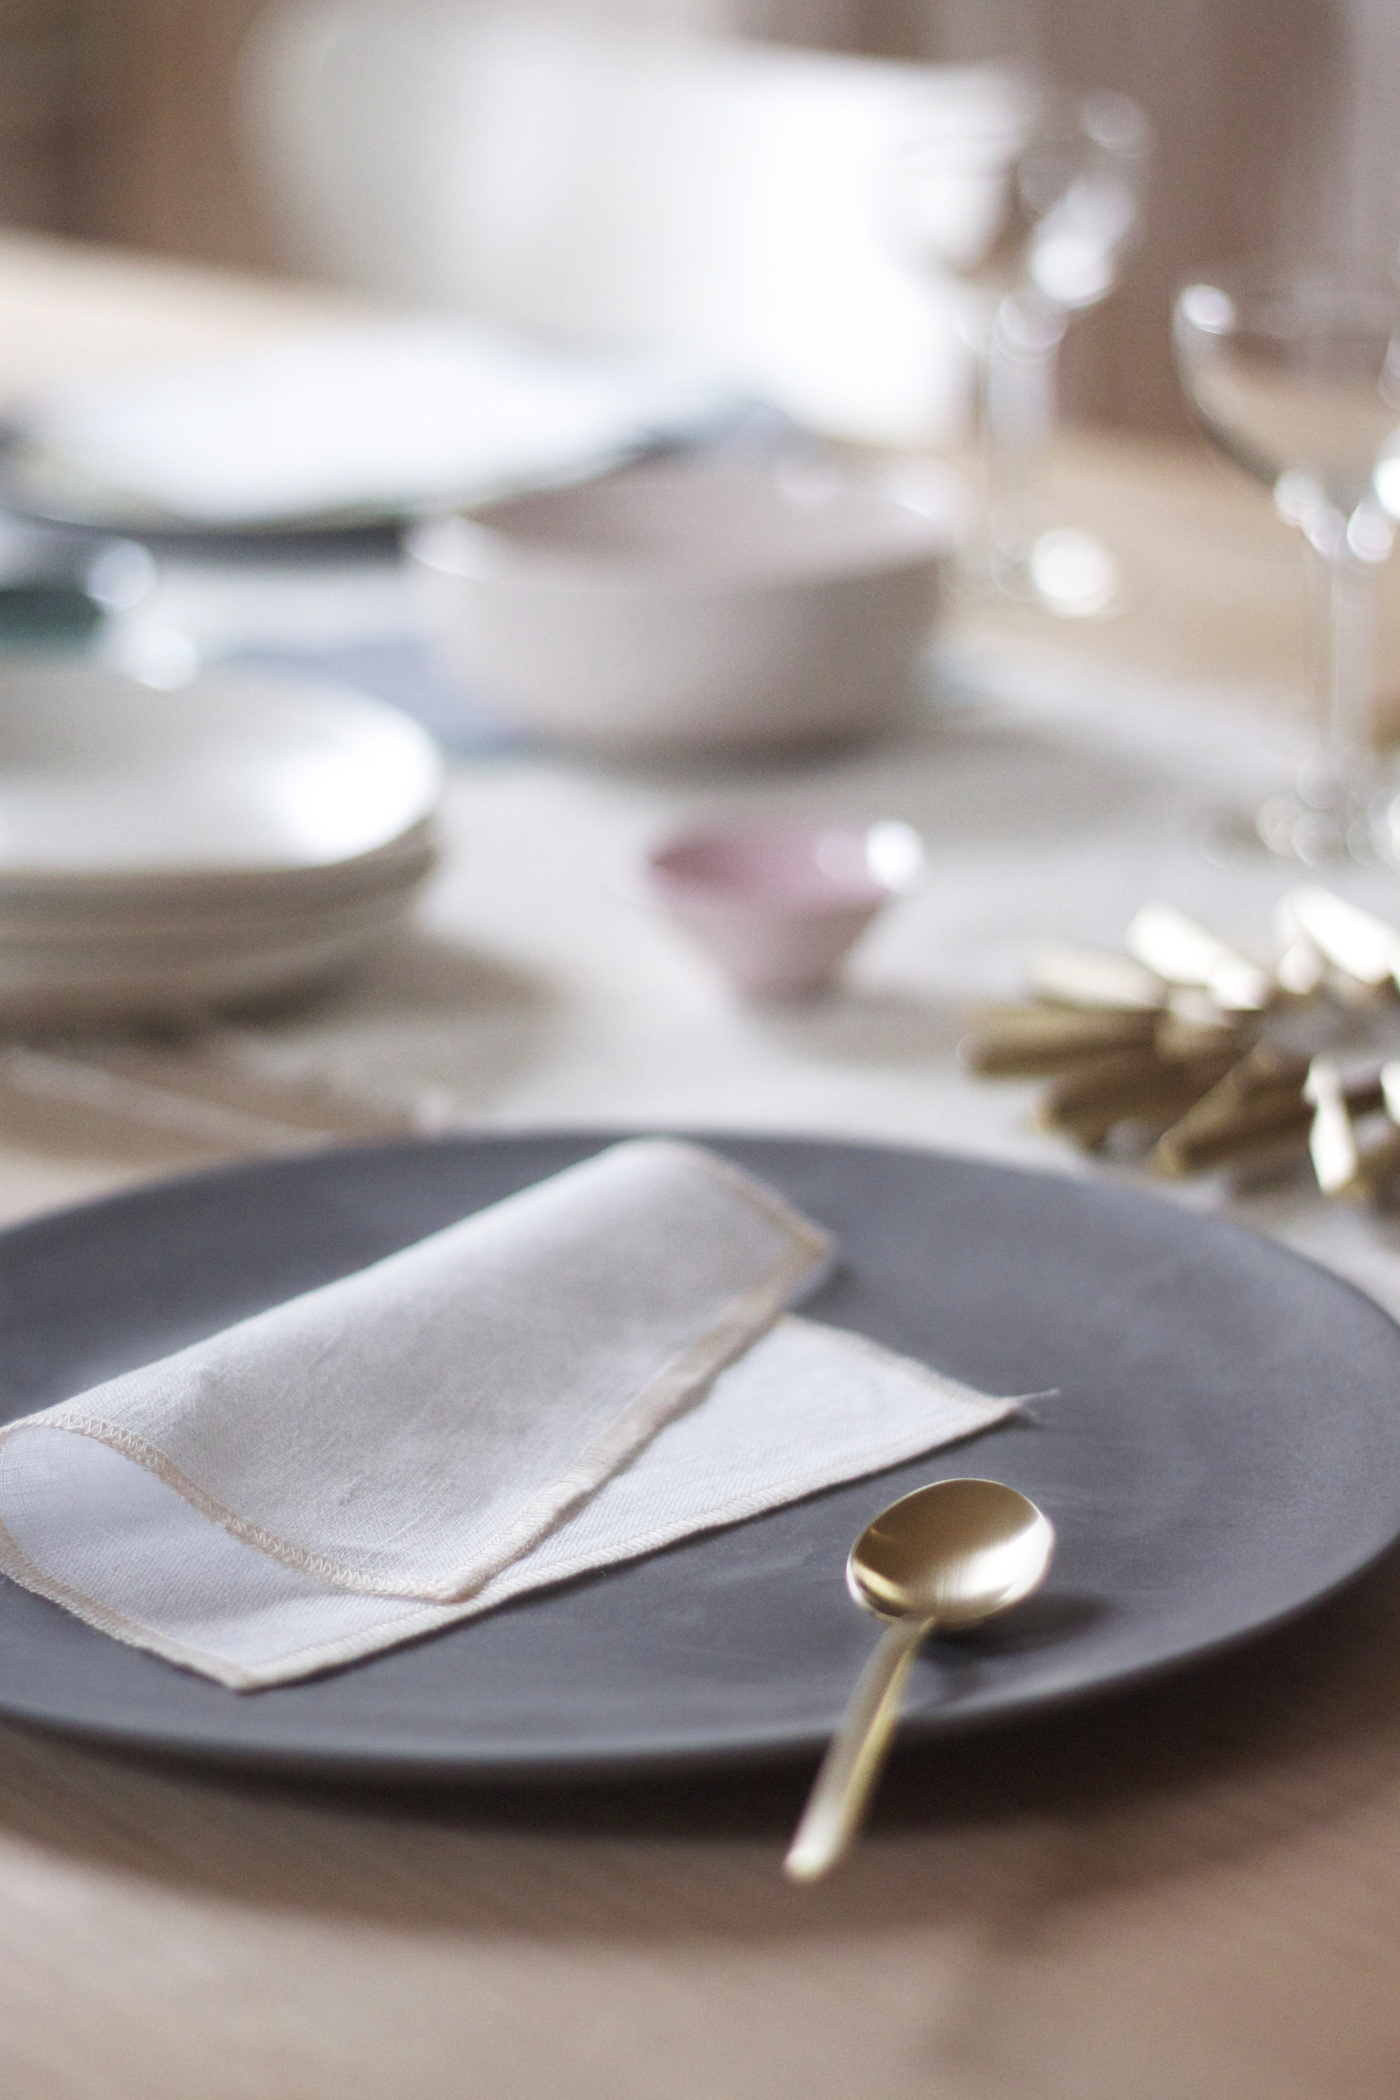 Mothers Day Table with The Everyday Napkin, Due Oro spoon, by Justine Hand for Remodelista_edited-1